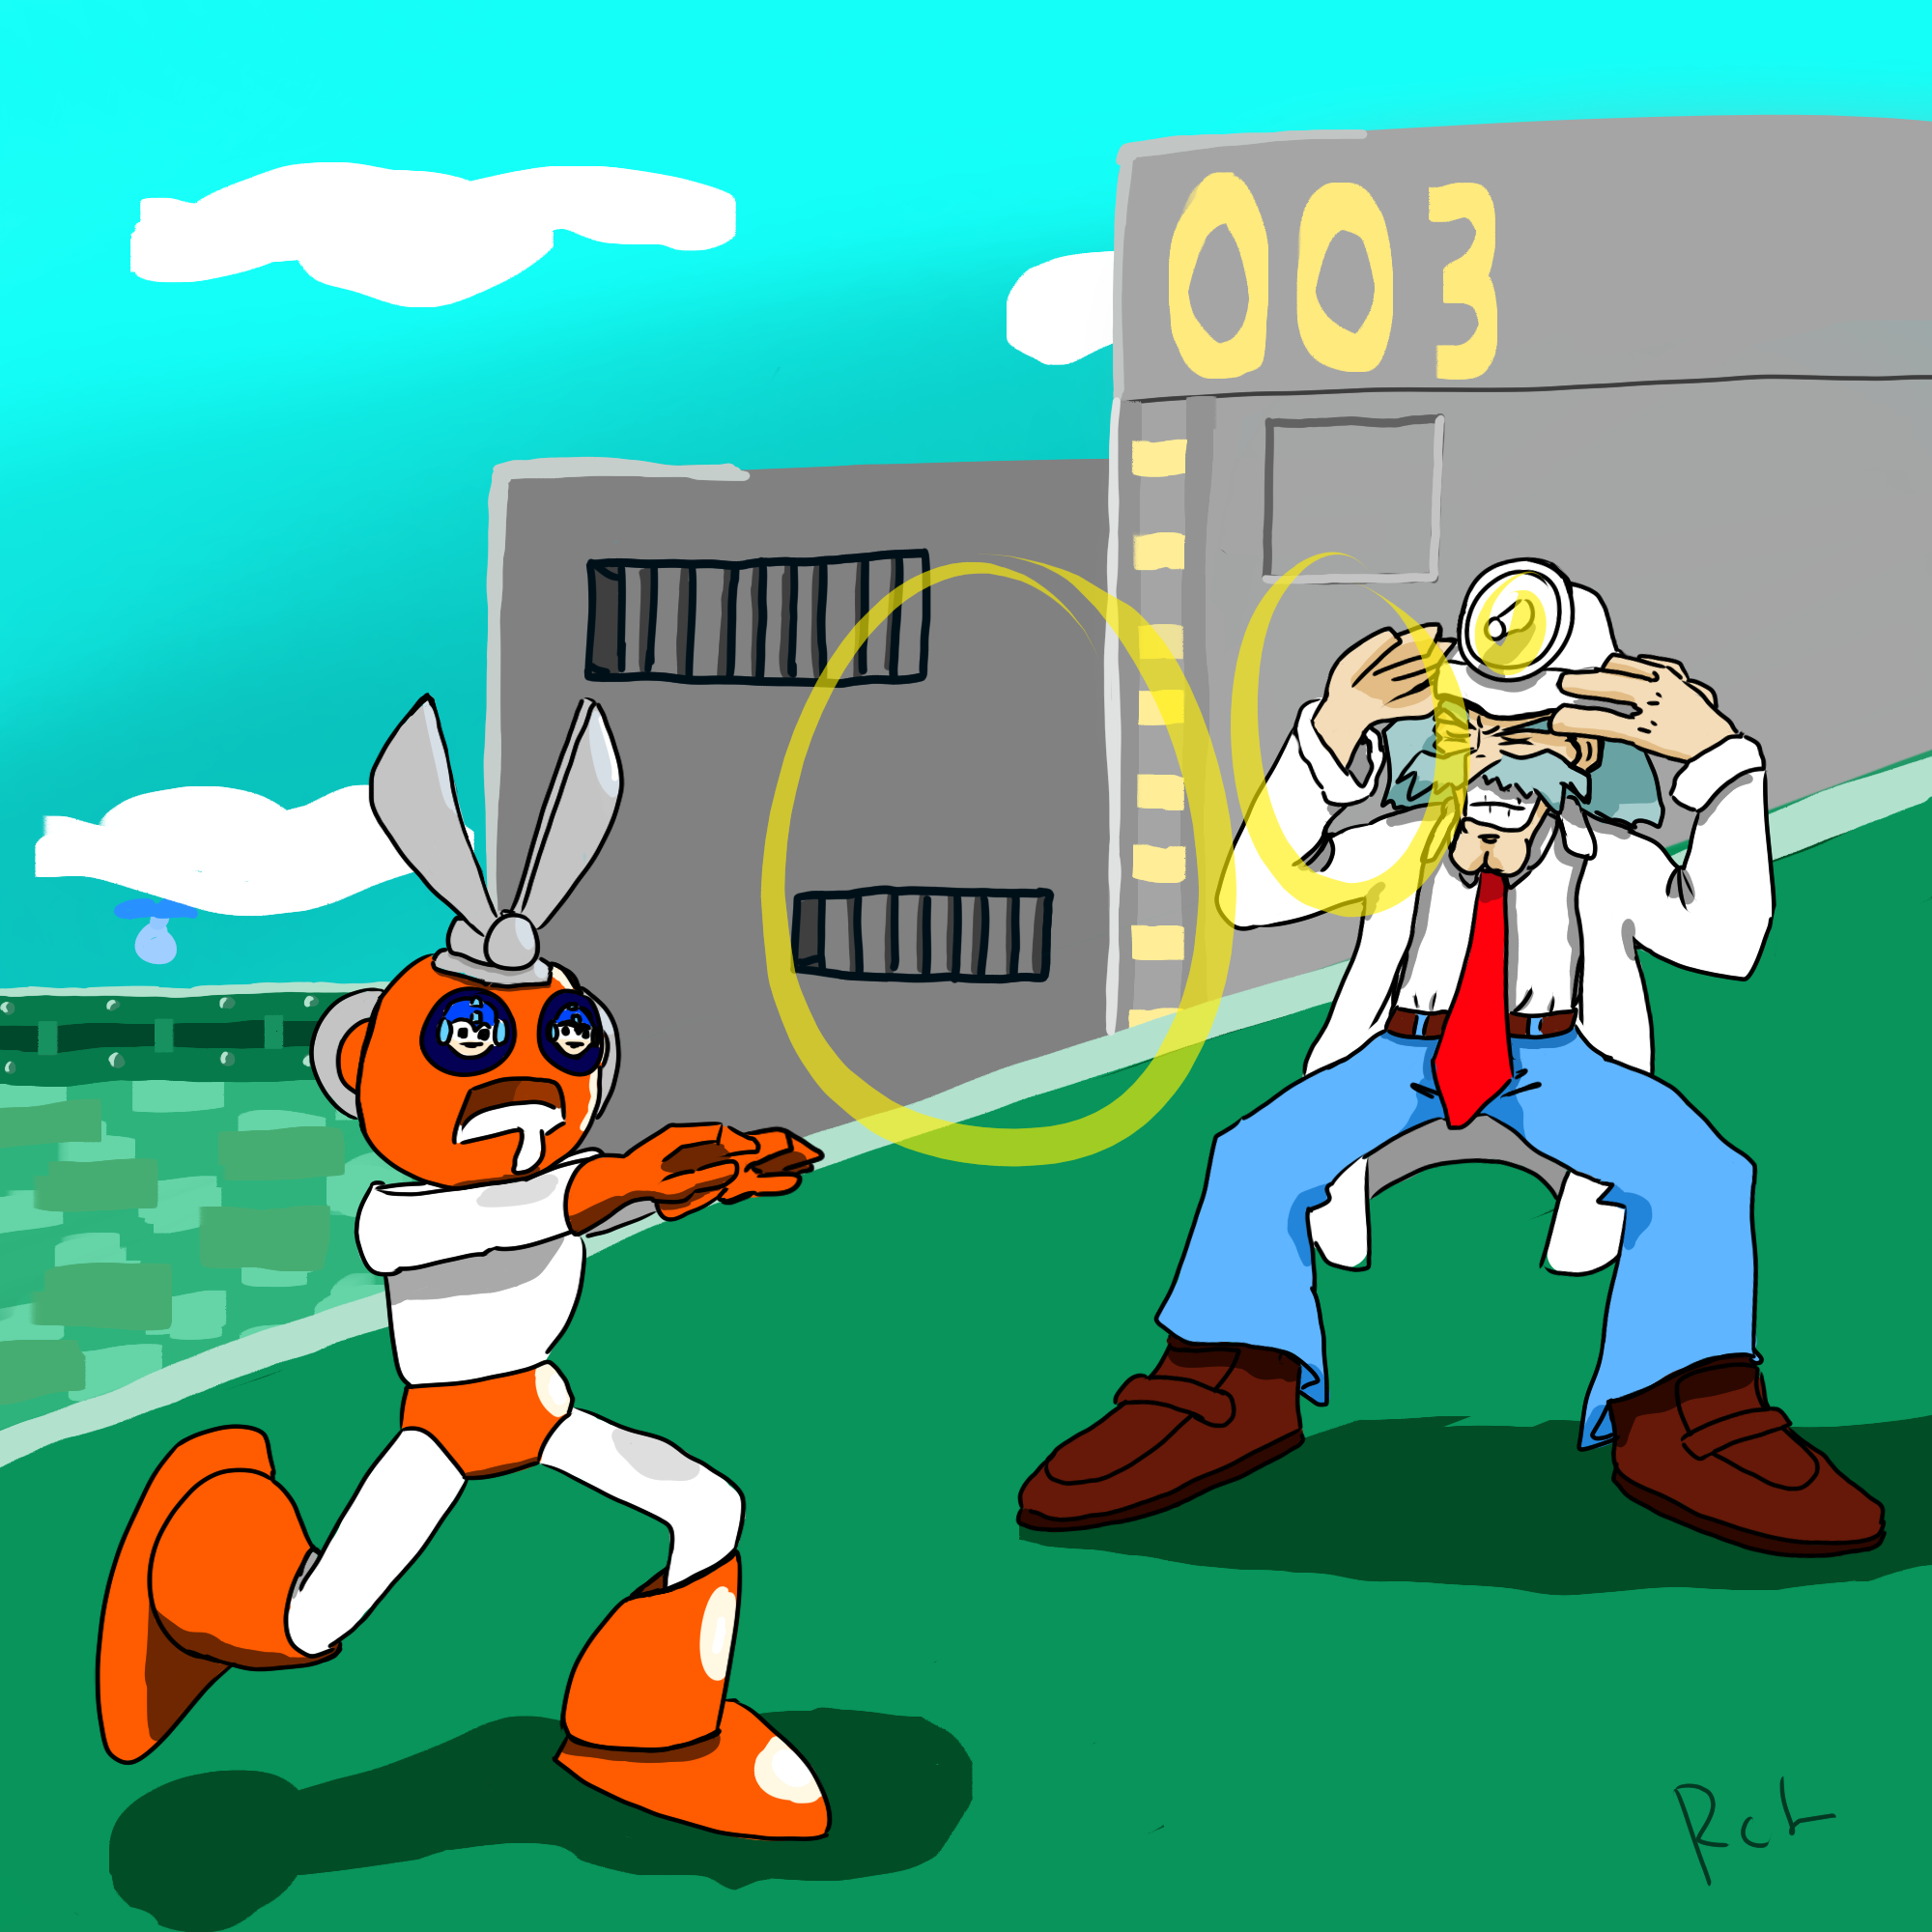 (Art Request) Dr. wily and cut man